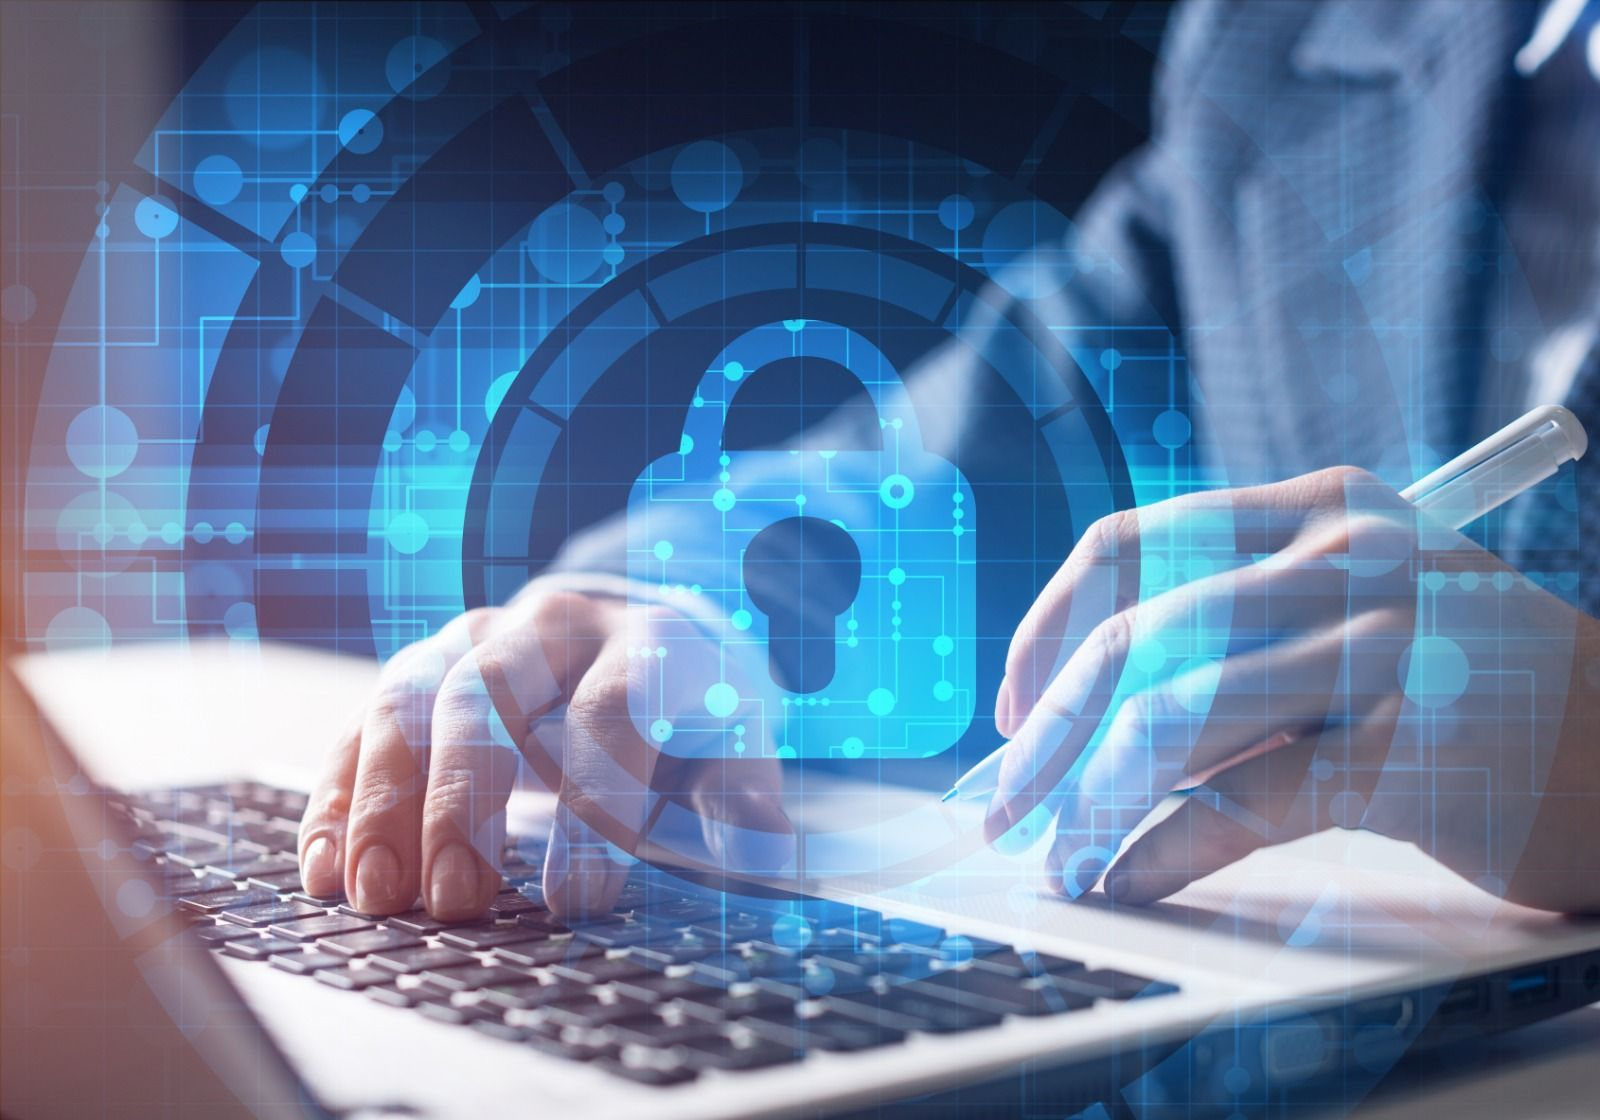 Cyber essentials: Starting your construction cybersecurity journey